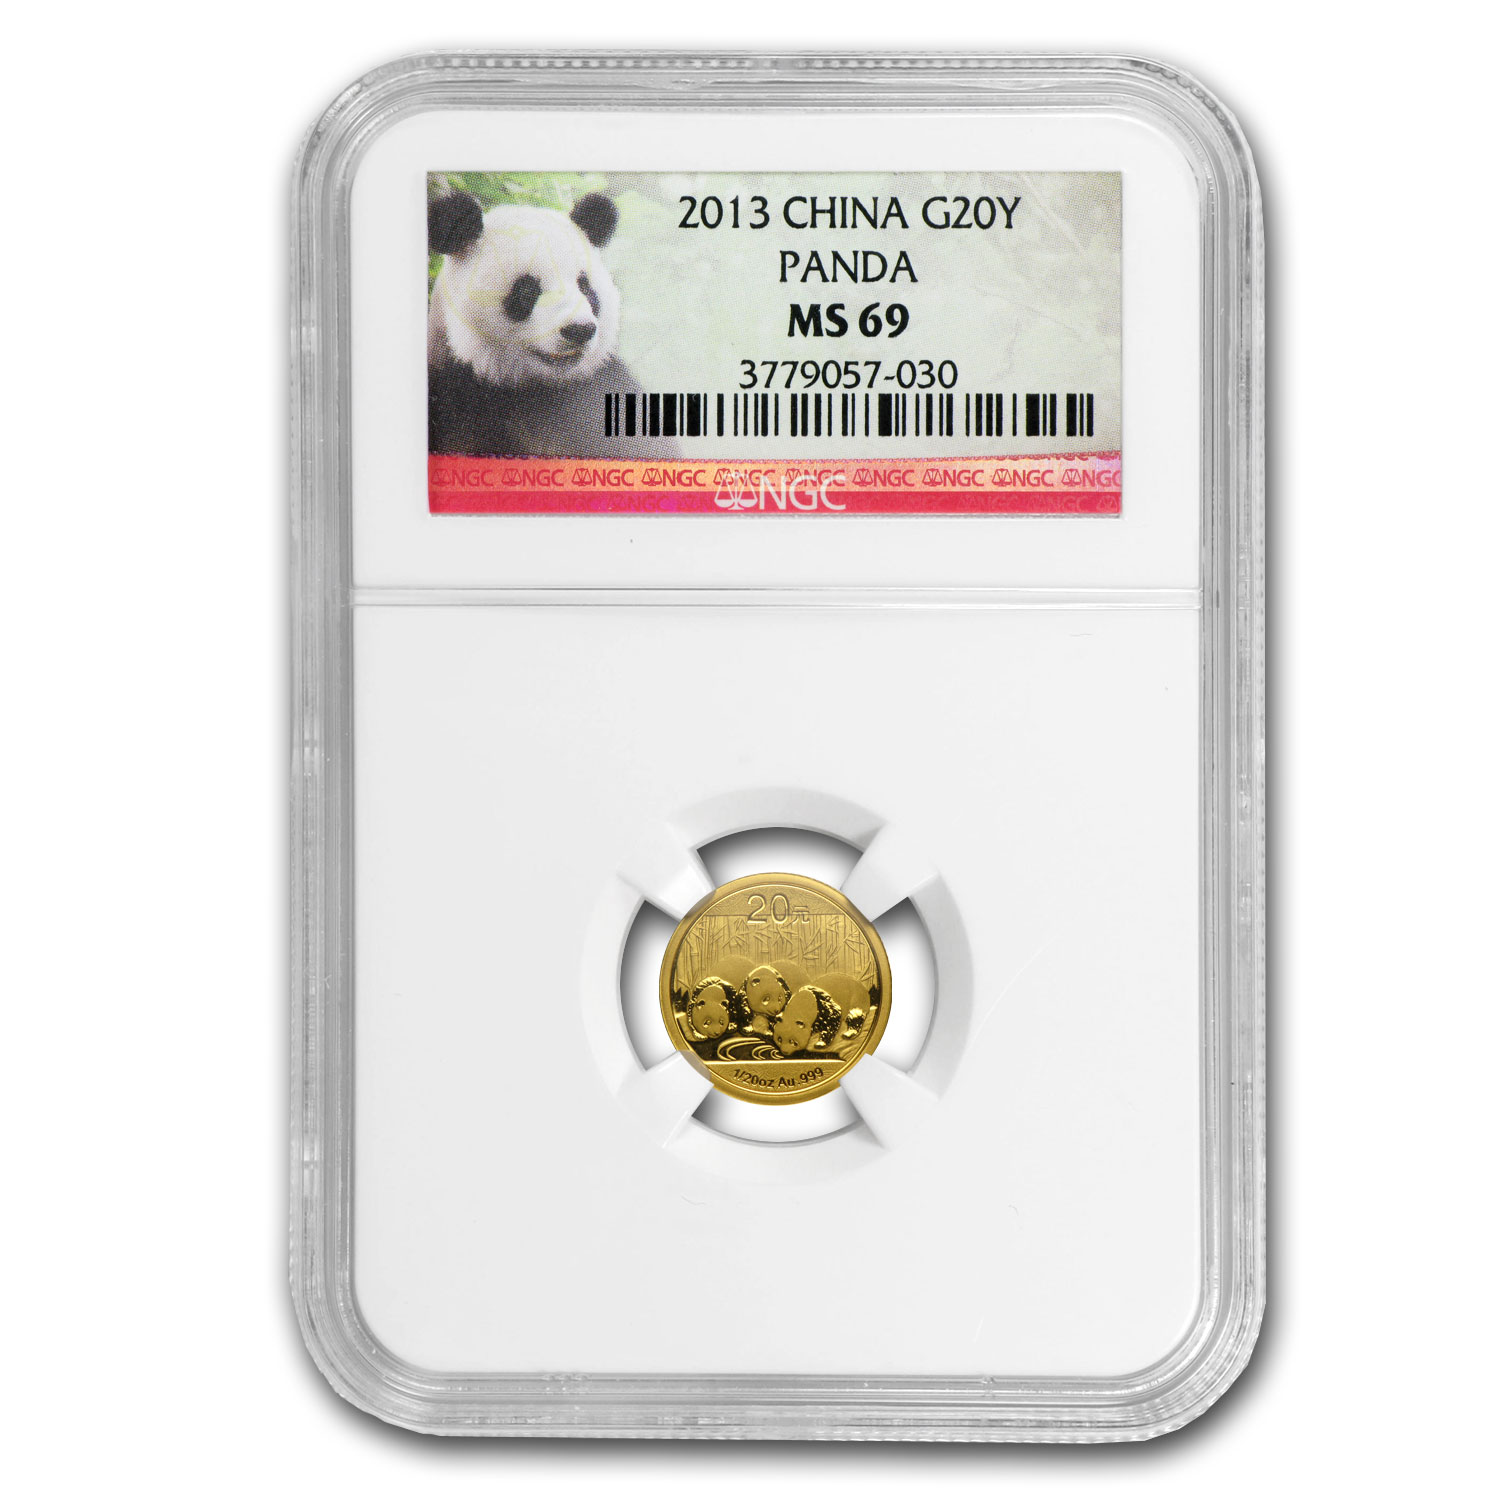 2013 (1/20 oz) Gold Chinese Panda - MS-69 NGC